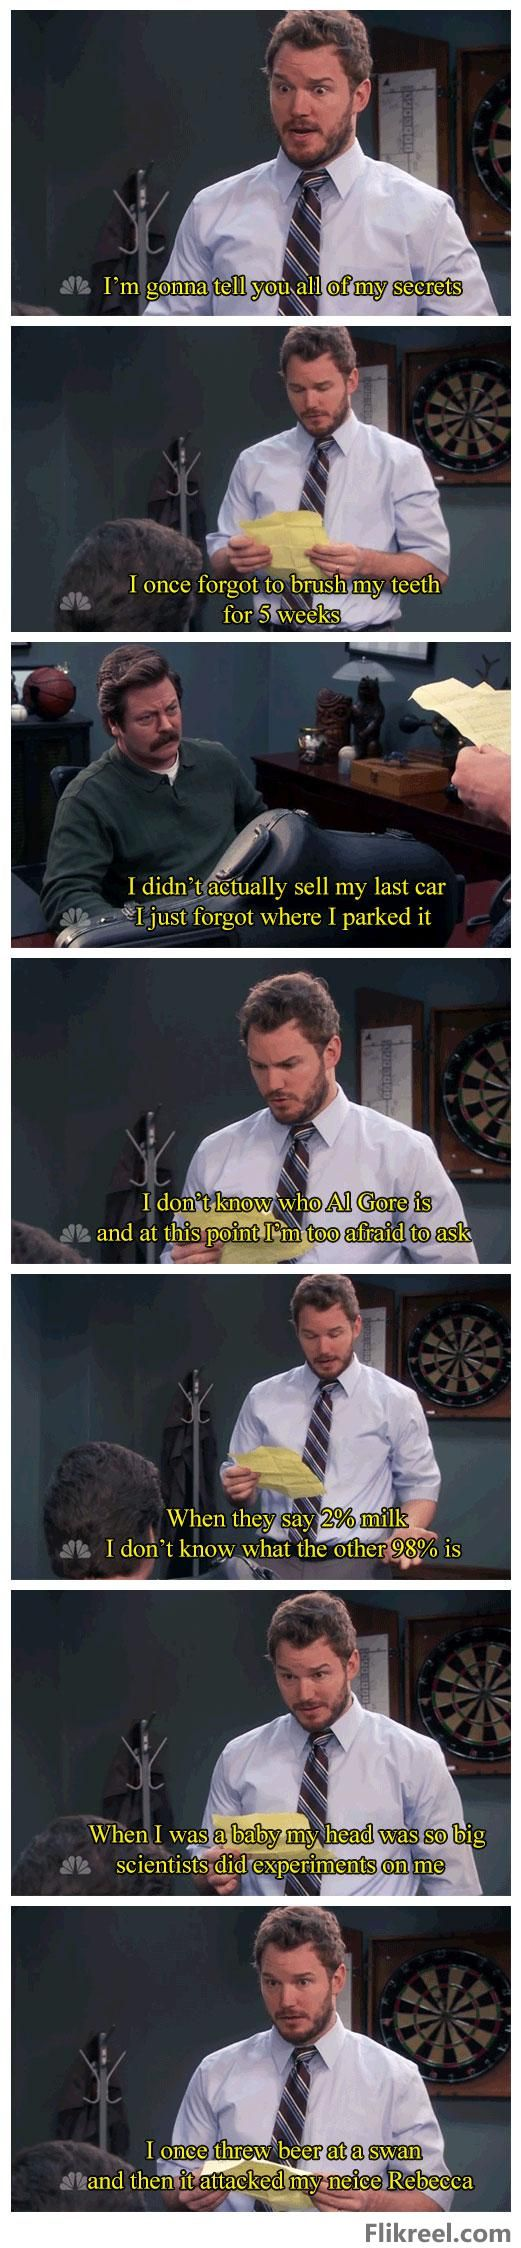 Parks and Recreation - Chris Pratt